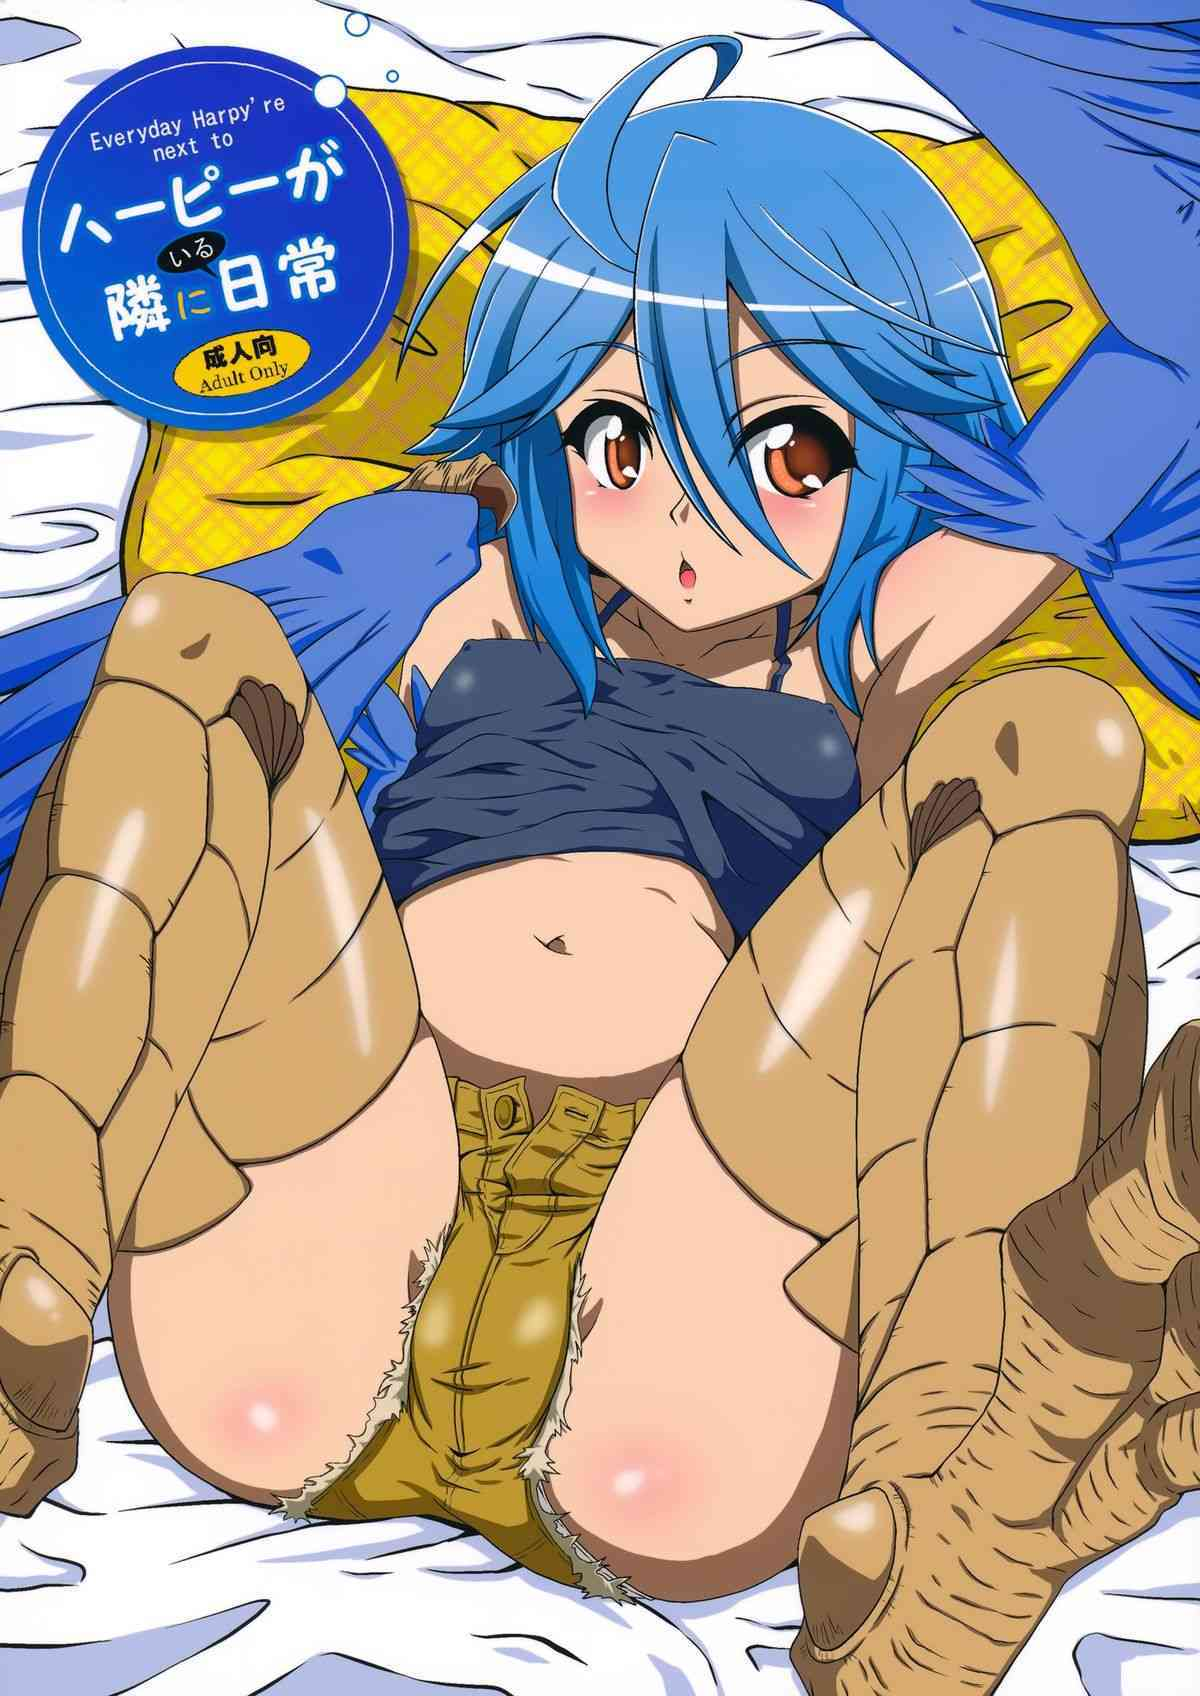 Sexy harpy hentai pics exposed images